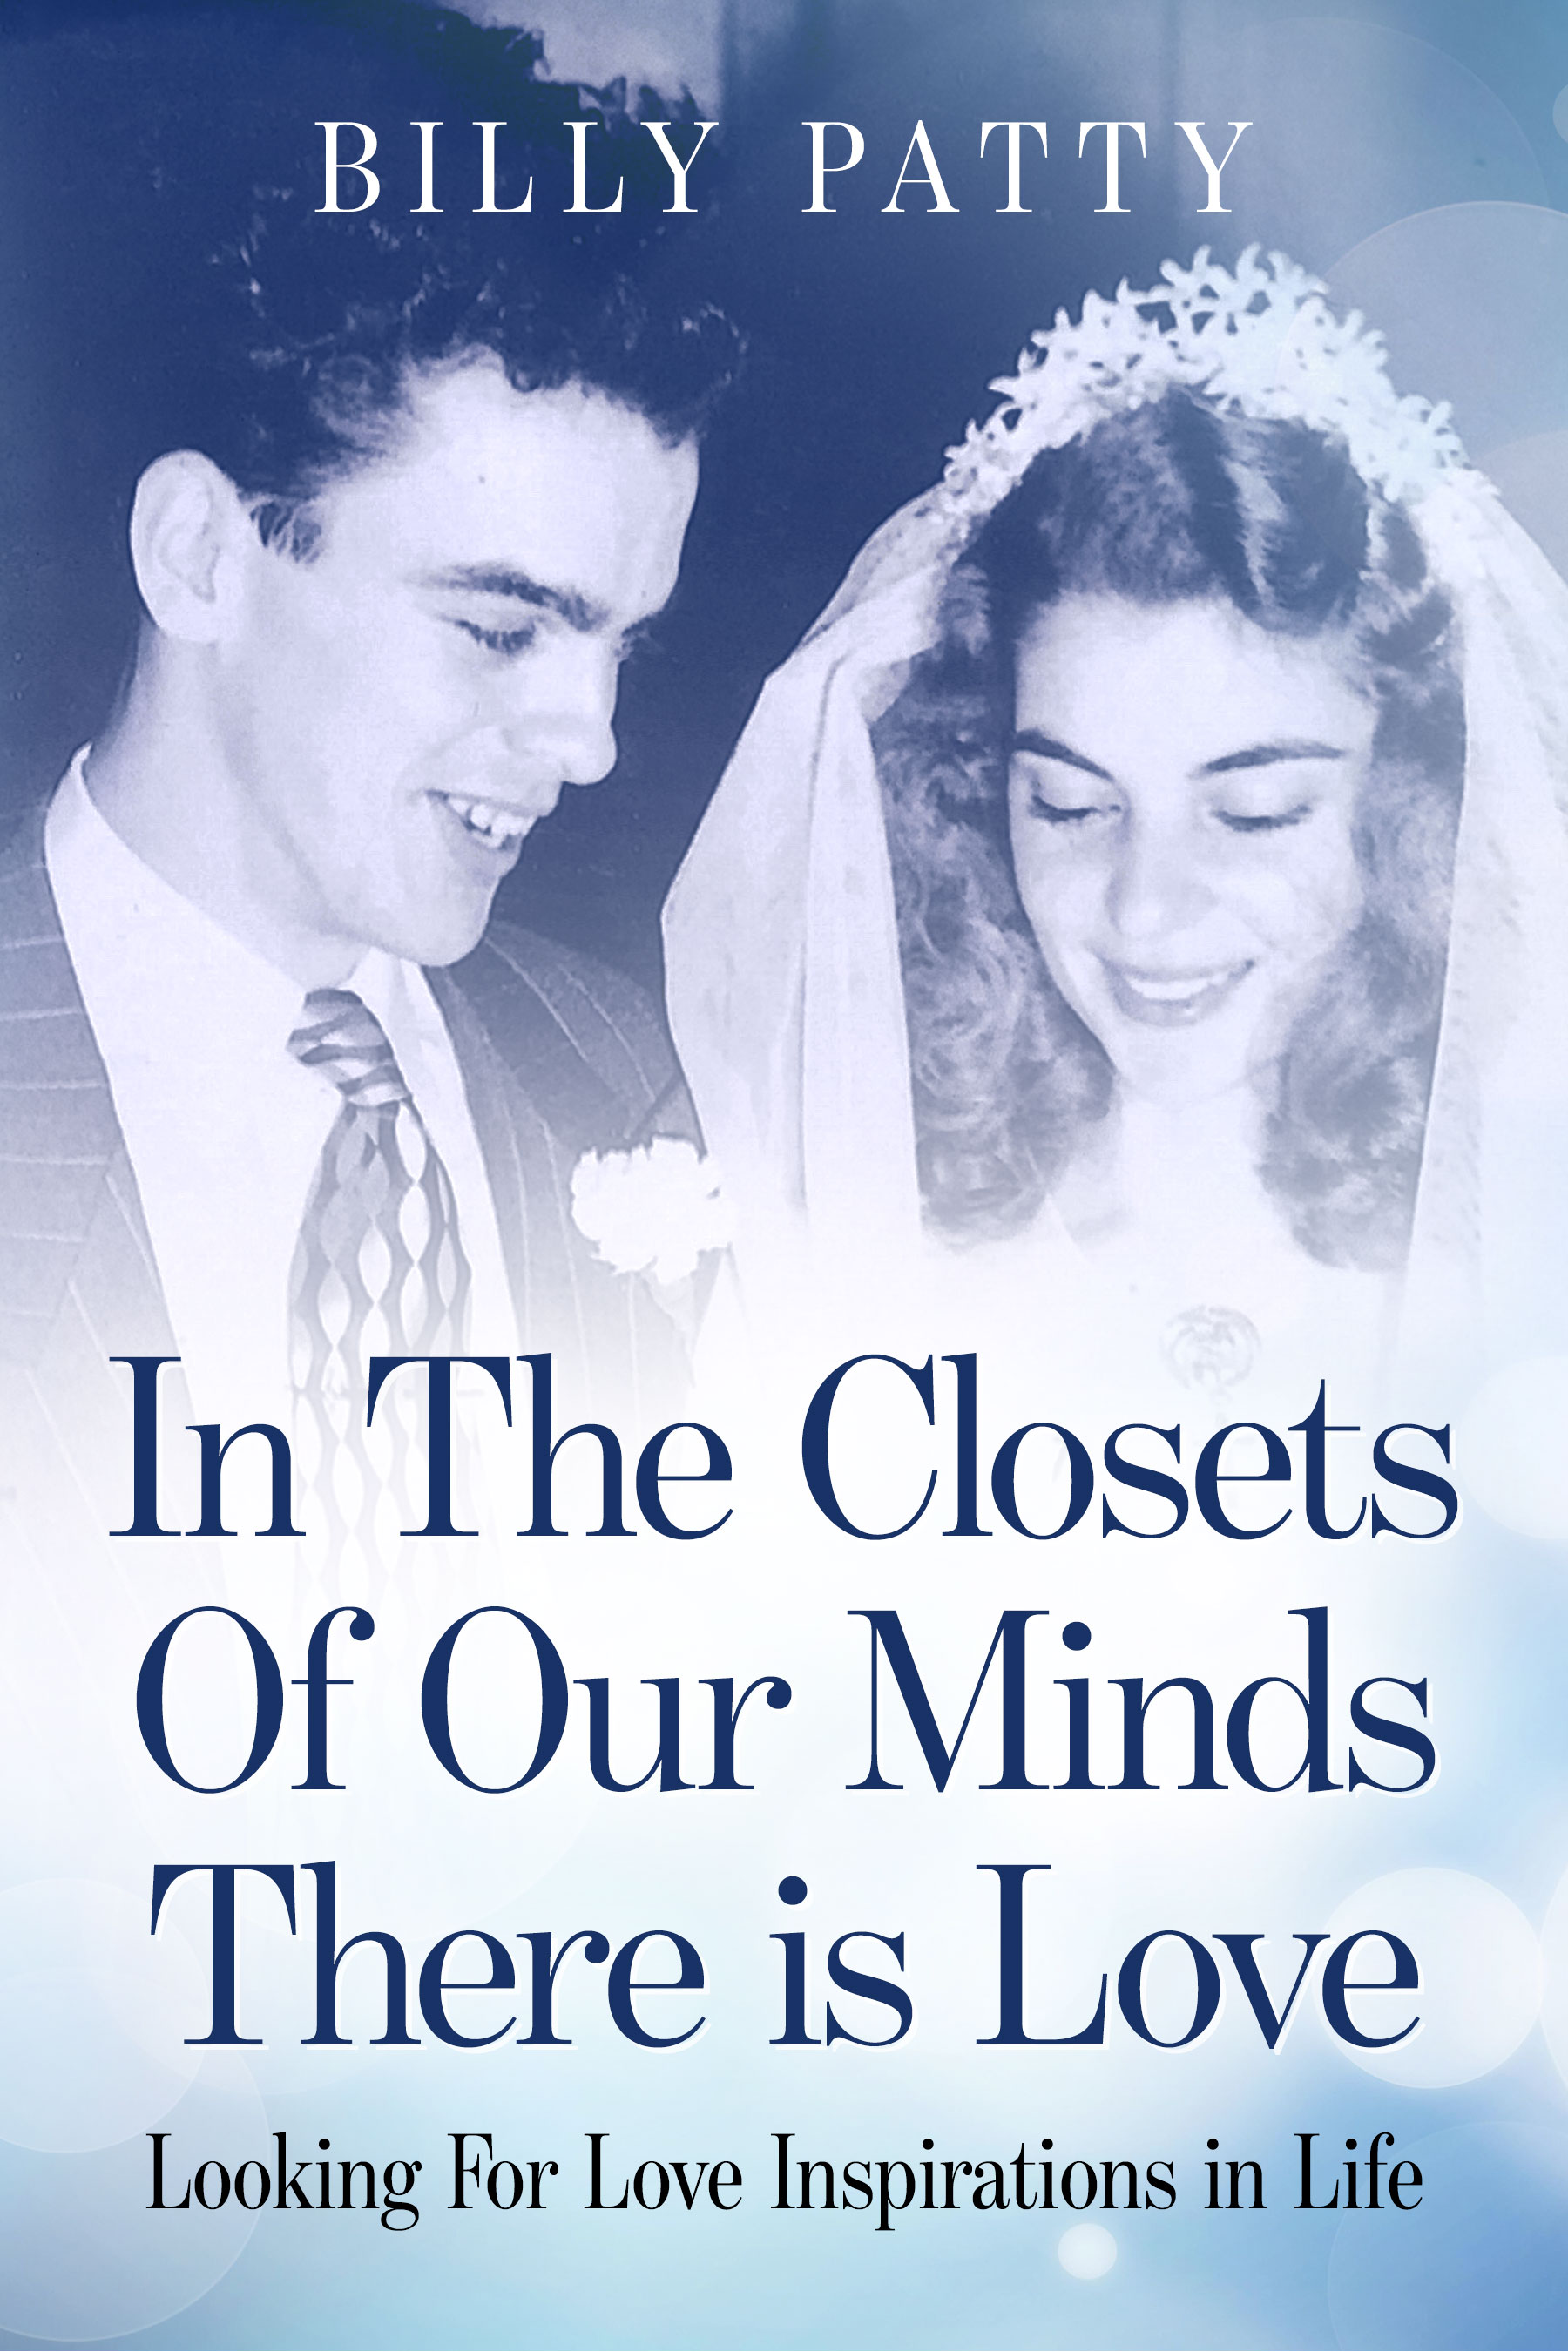 IN THE CLOSETS OF OUR MINDS THERE IS LOVE